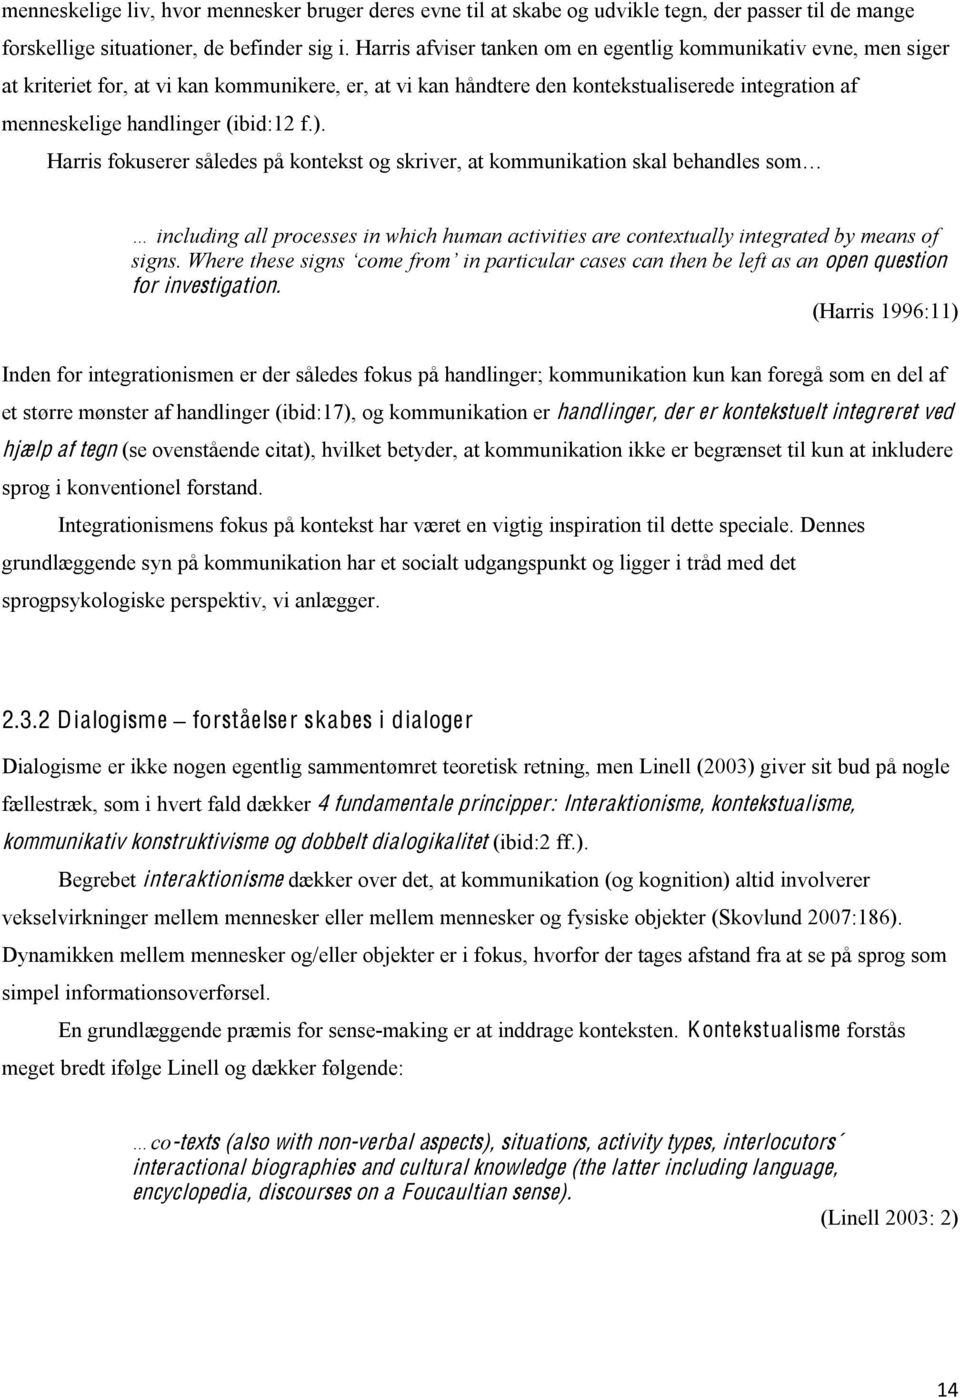 (ibid:12 f.). Harris fokuserer således på kontekst og skriver, at kommunikation skal behandles som including all processes in which human activities are contextually integrated by means of signs.